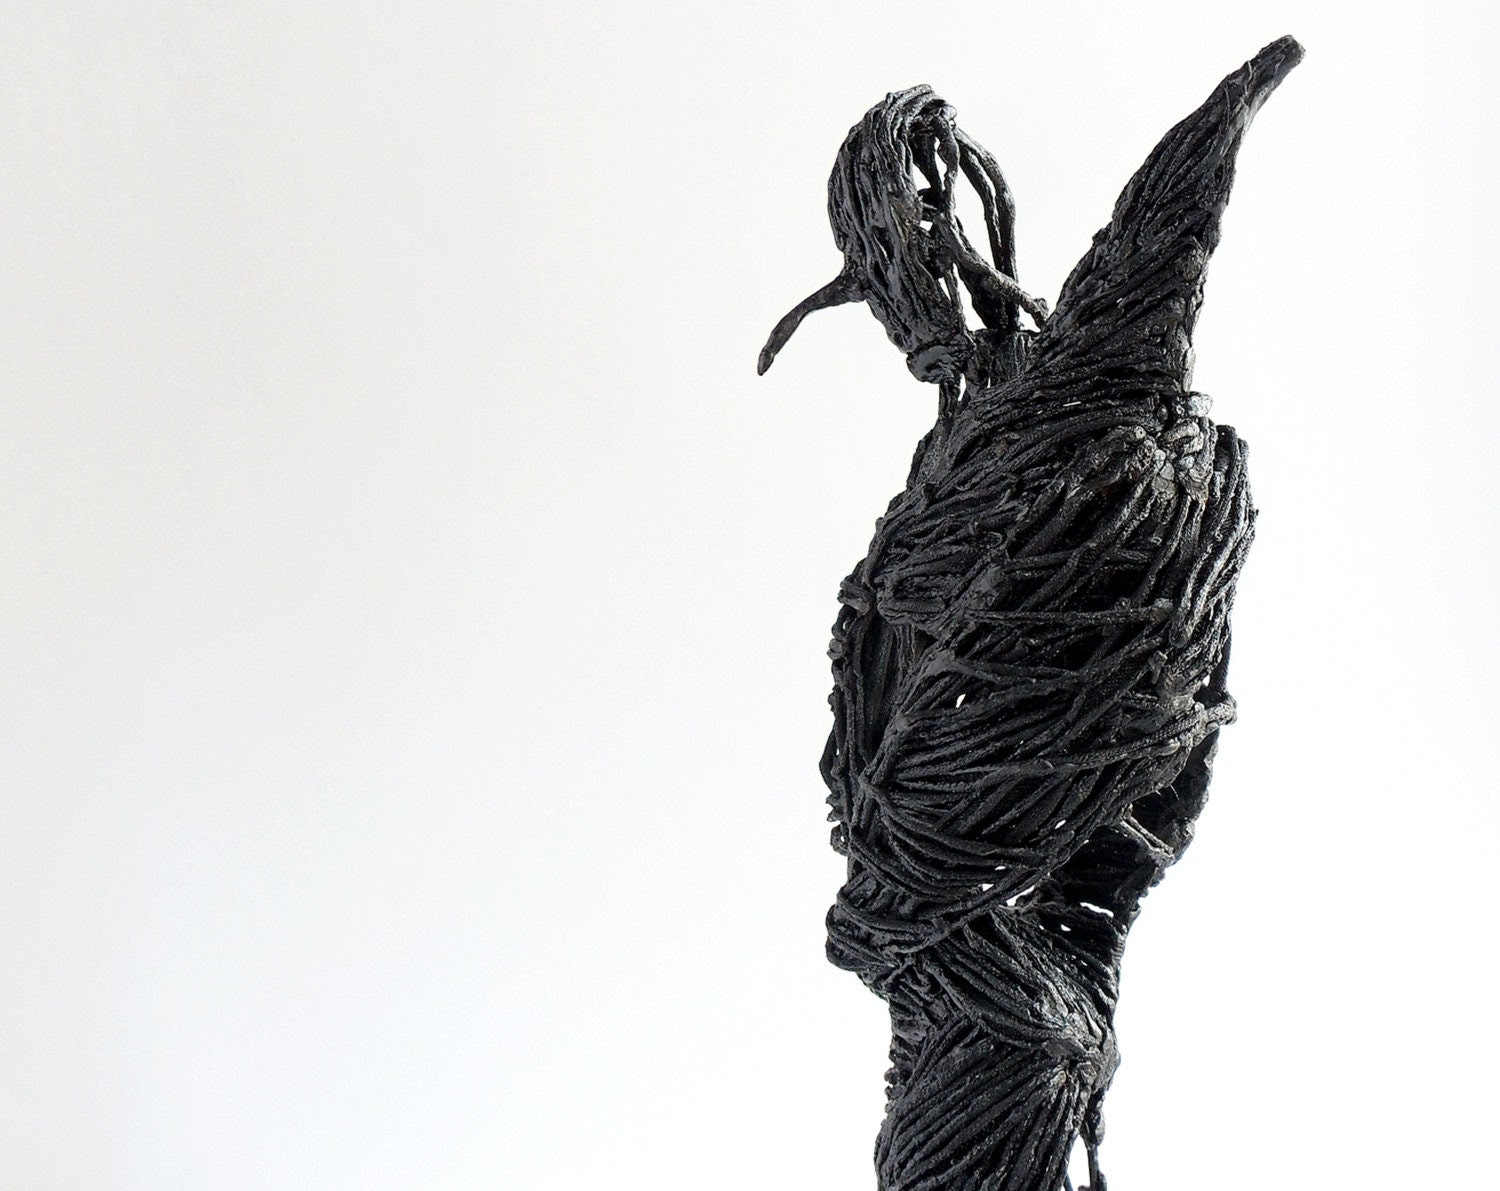 Black sculpture singed fabric sculpture figurine art by OsikOsik